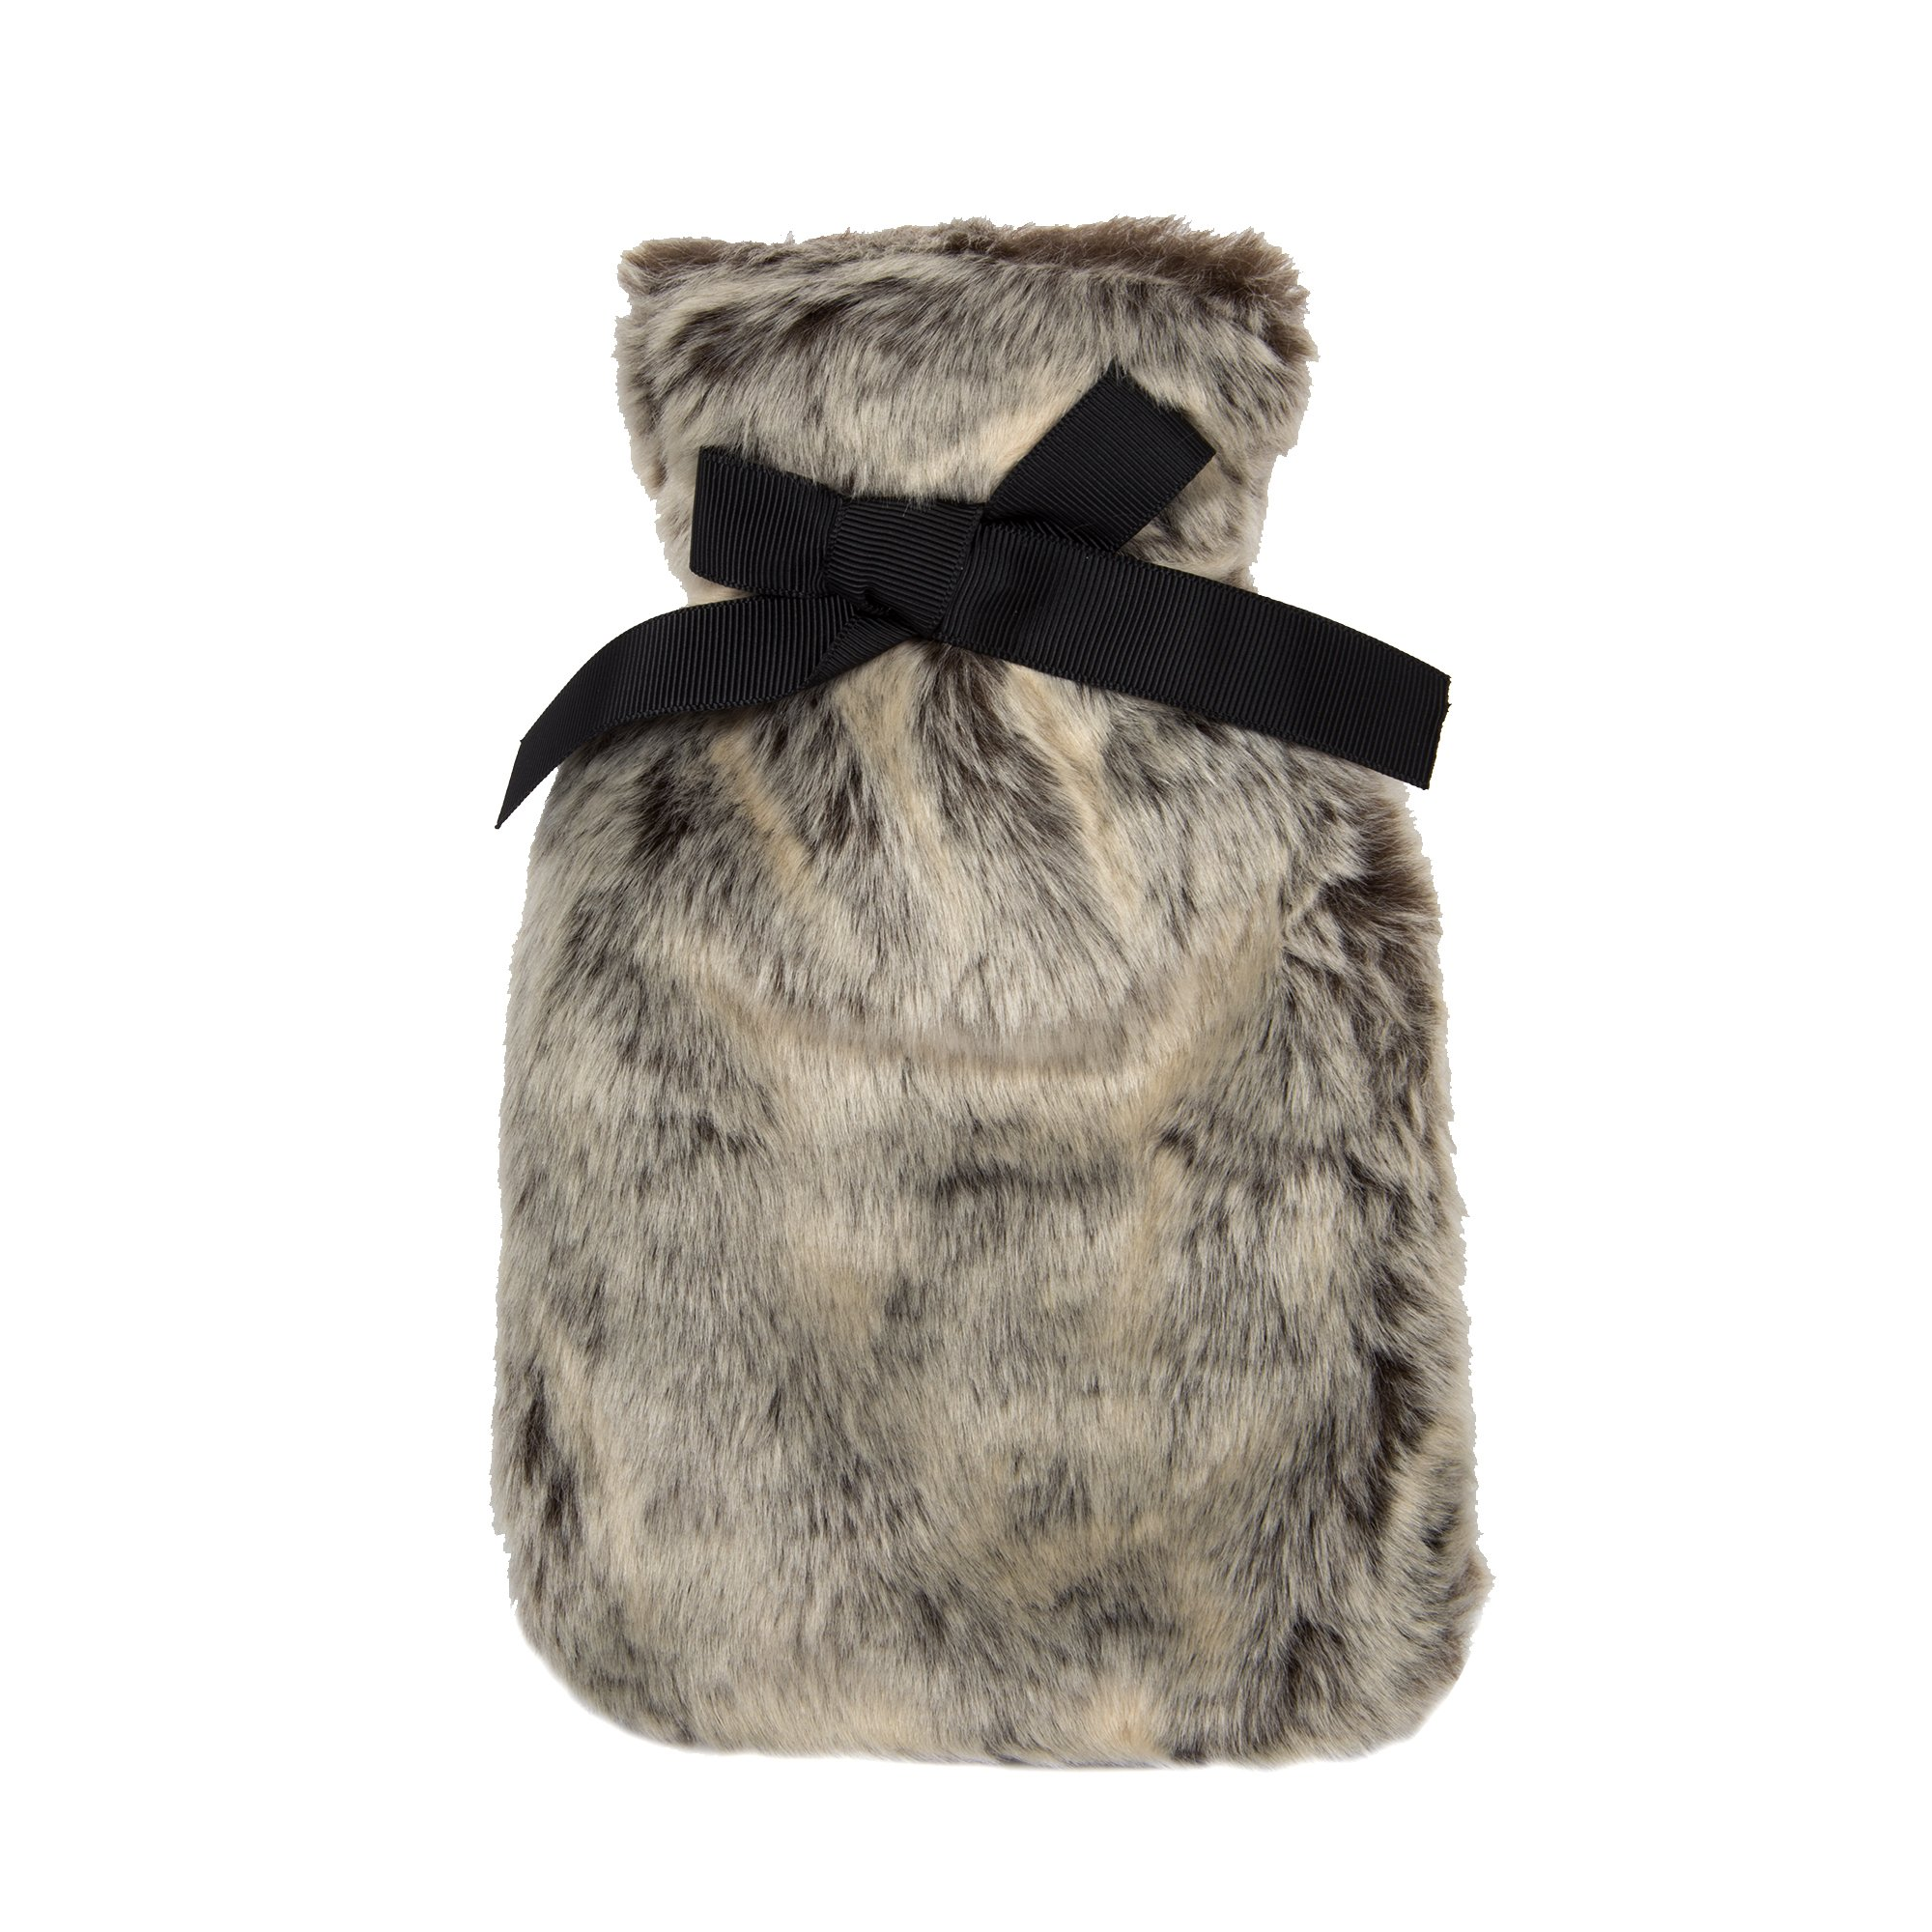 Bodico, 350ml Hot Water Bottle with Luxe Faux Fur Cover with Black Bow, 8.75 inches, Grey